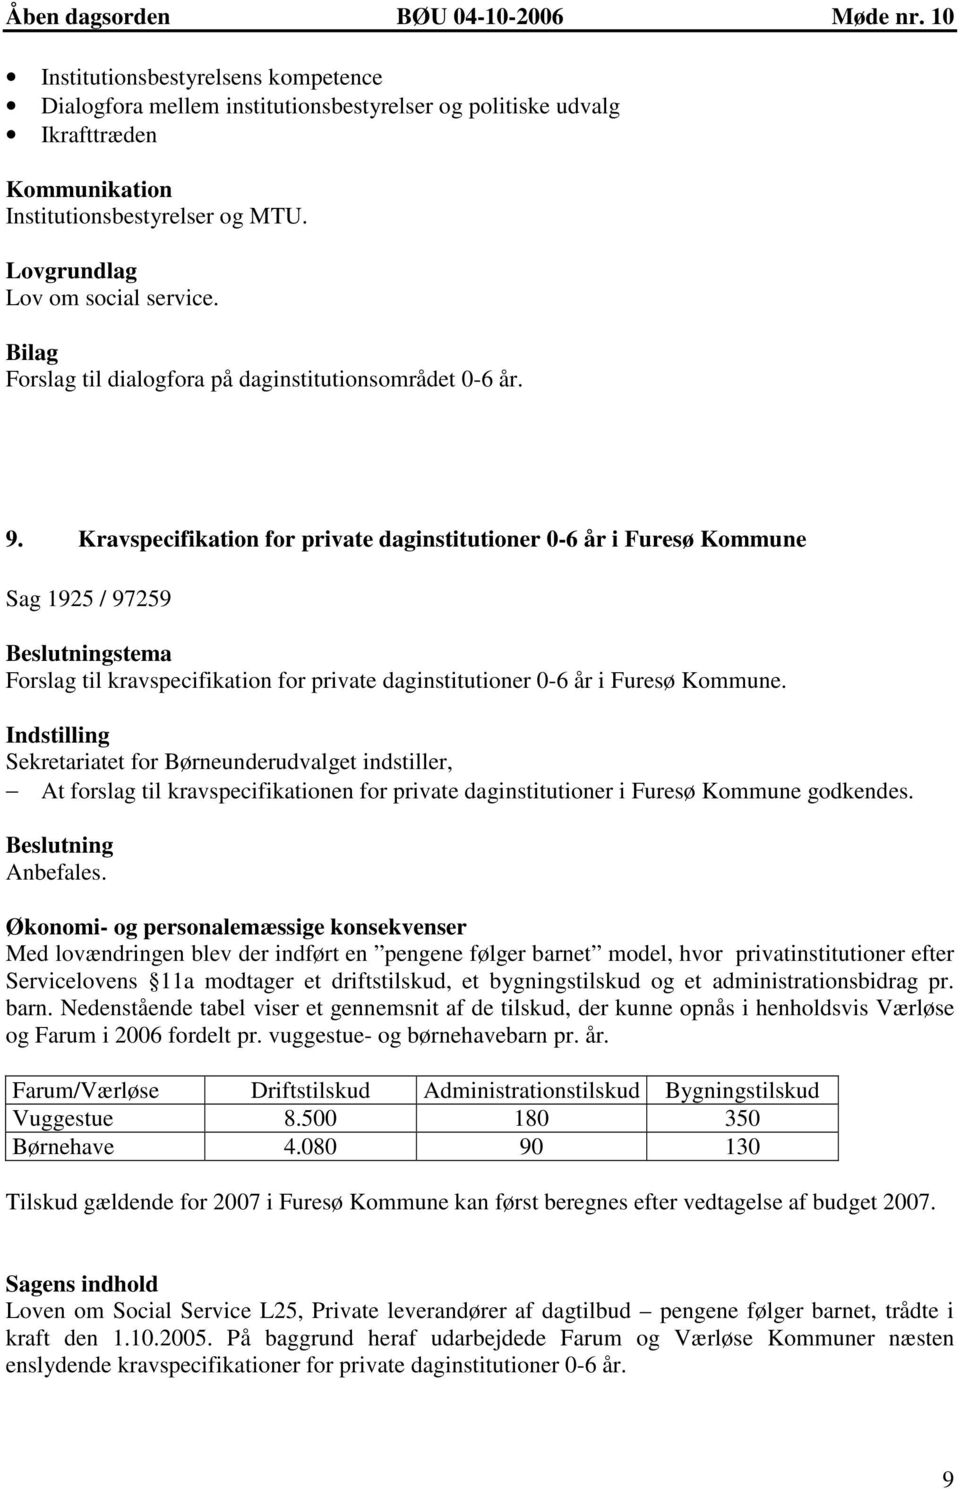 Kravspecifikation for private daginstitutioner 0-6 år i Furesø Kommune Sag 1925 / 97259 stema Forslag til kravspecifikation for private daginstitutioner 0-6 år i Furesø Kommune.